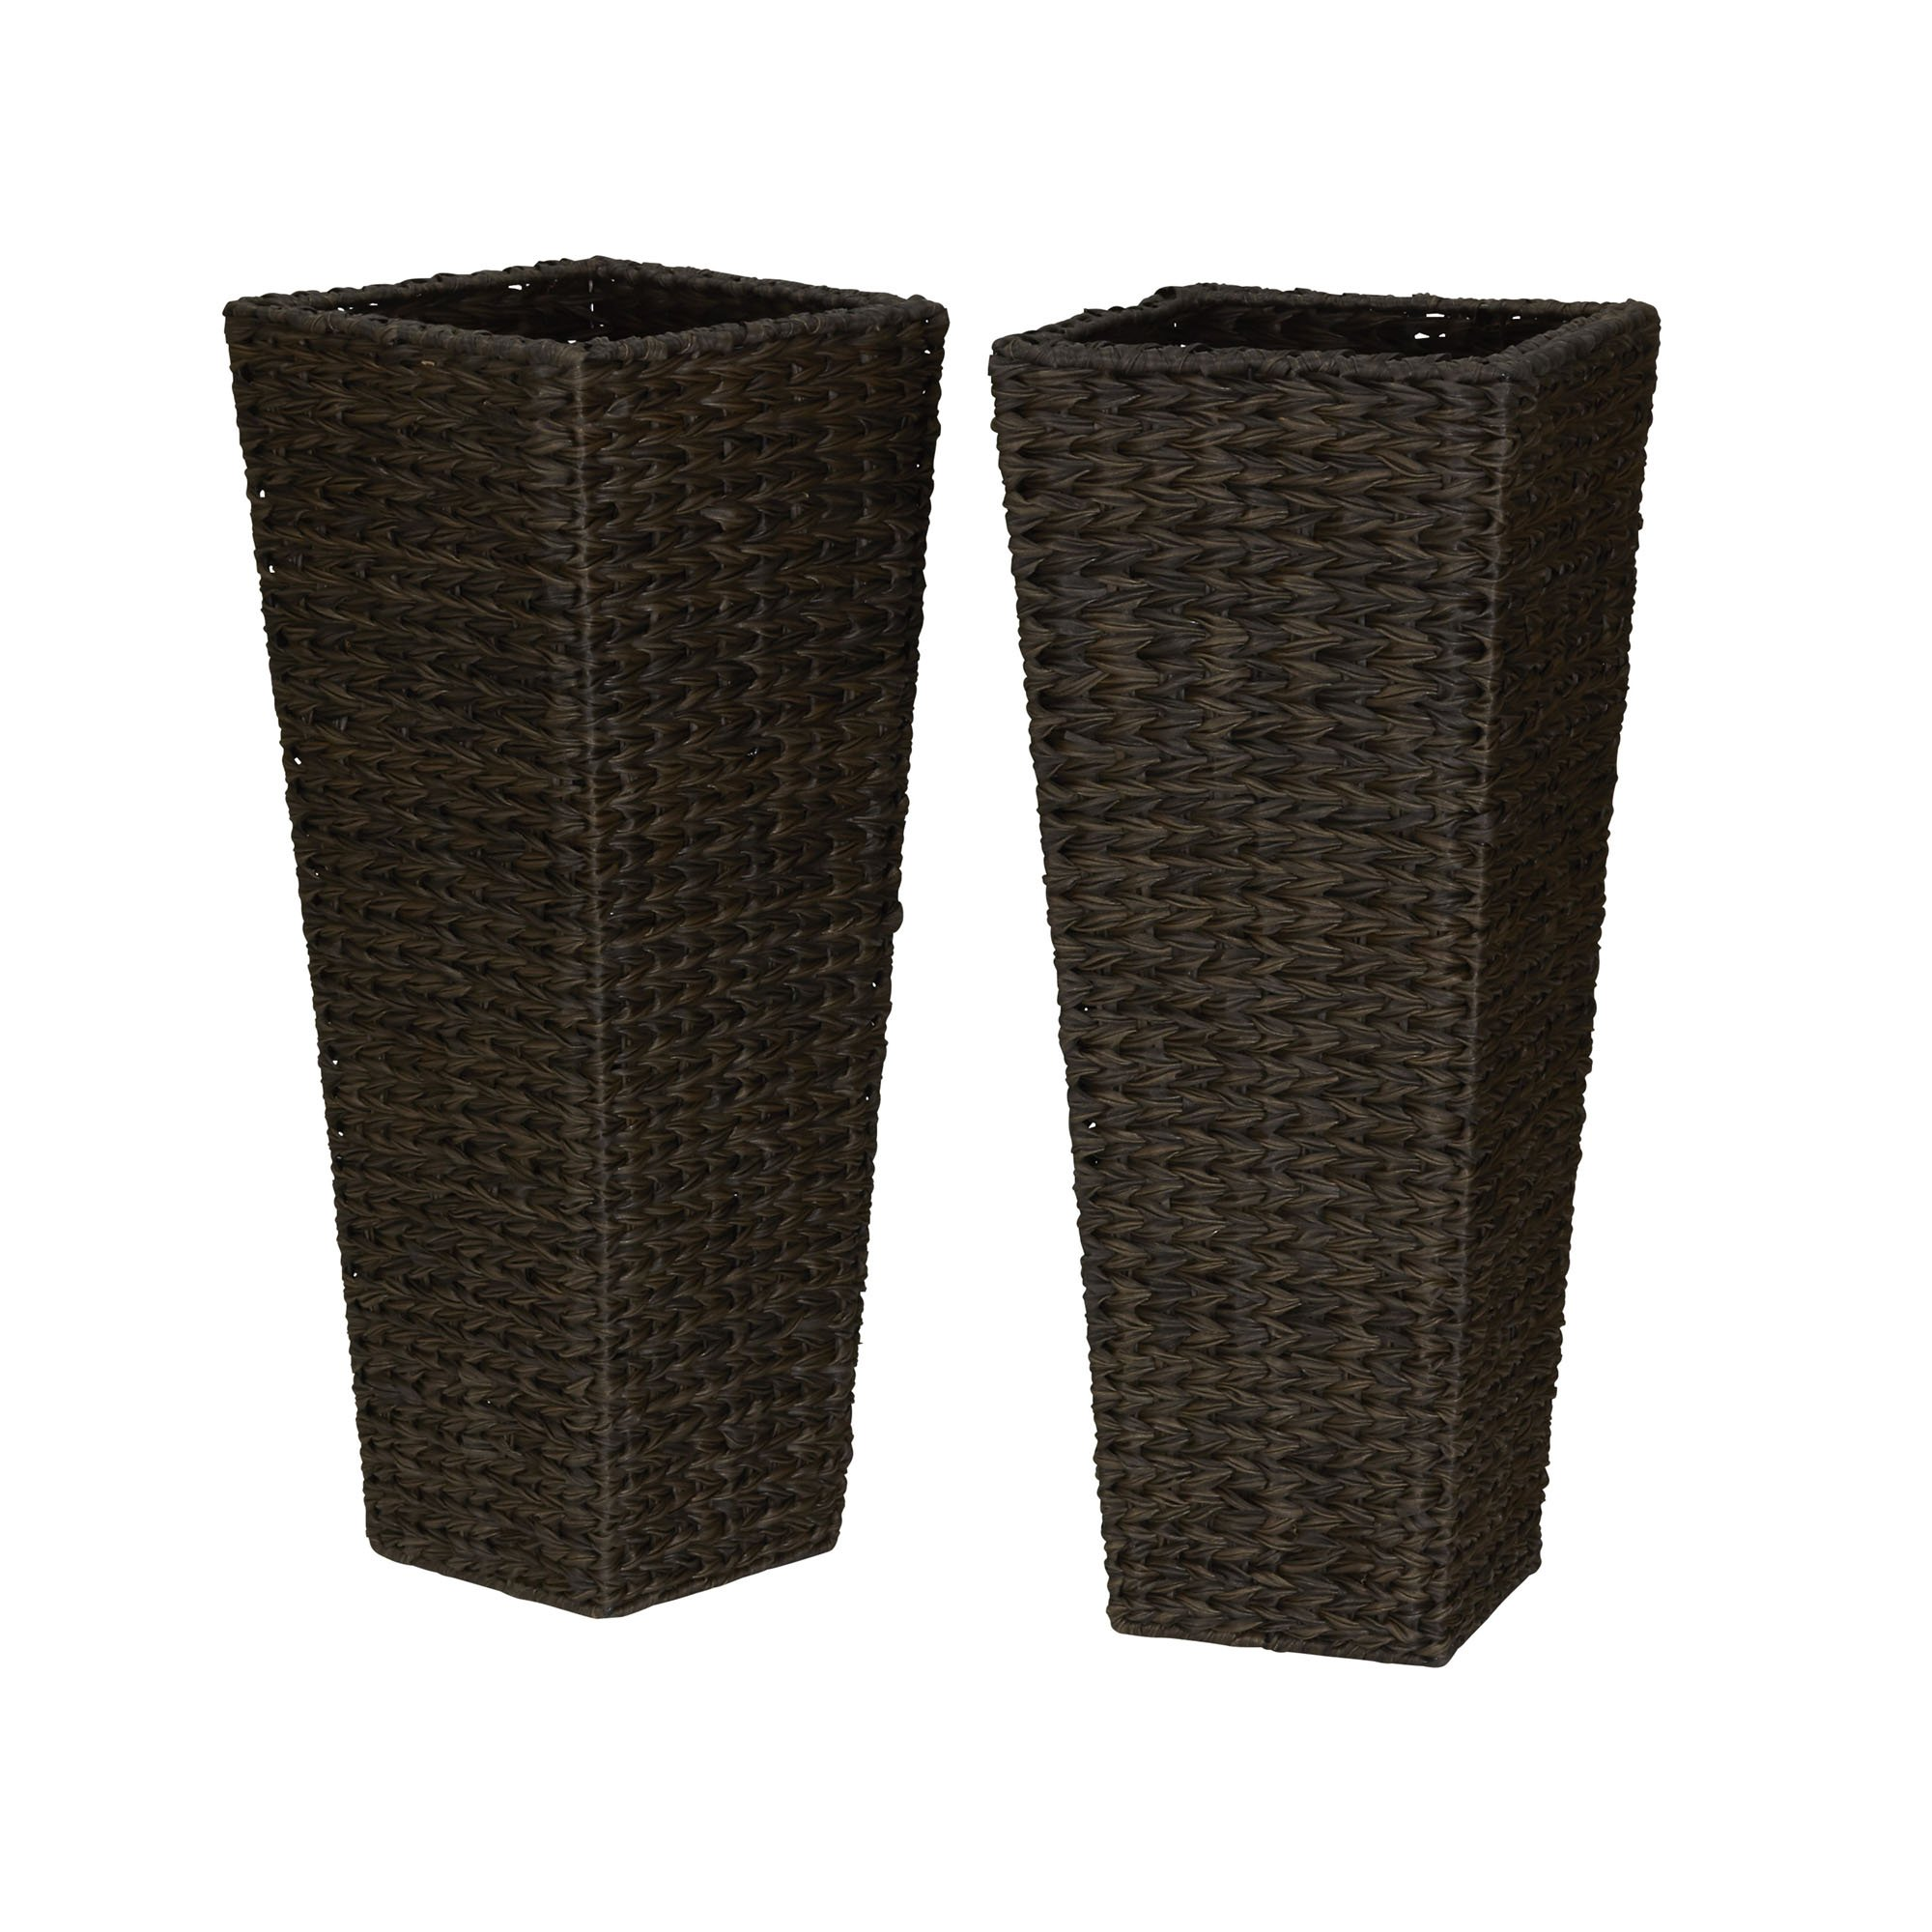 Household Essentials ml-5018 Resin Wicker Floor Vase Planters, 2 Piece by Household Essentials